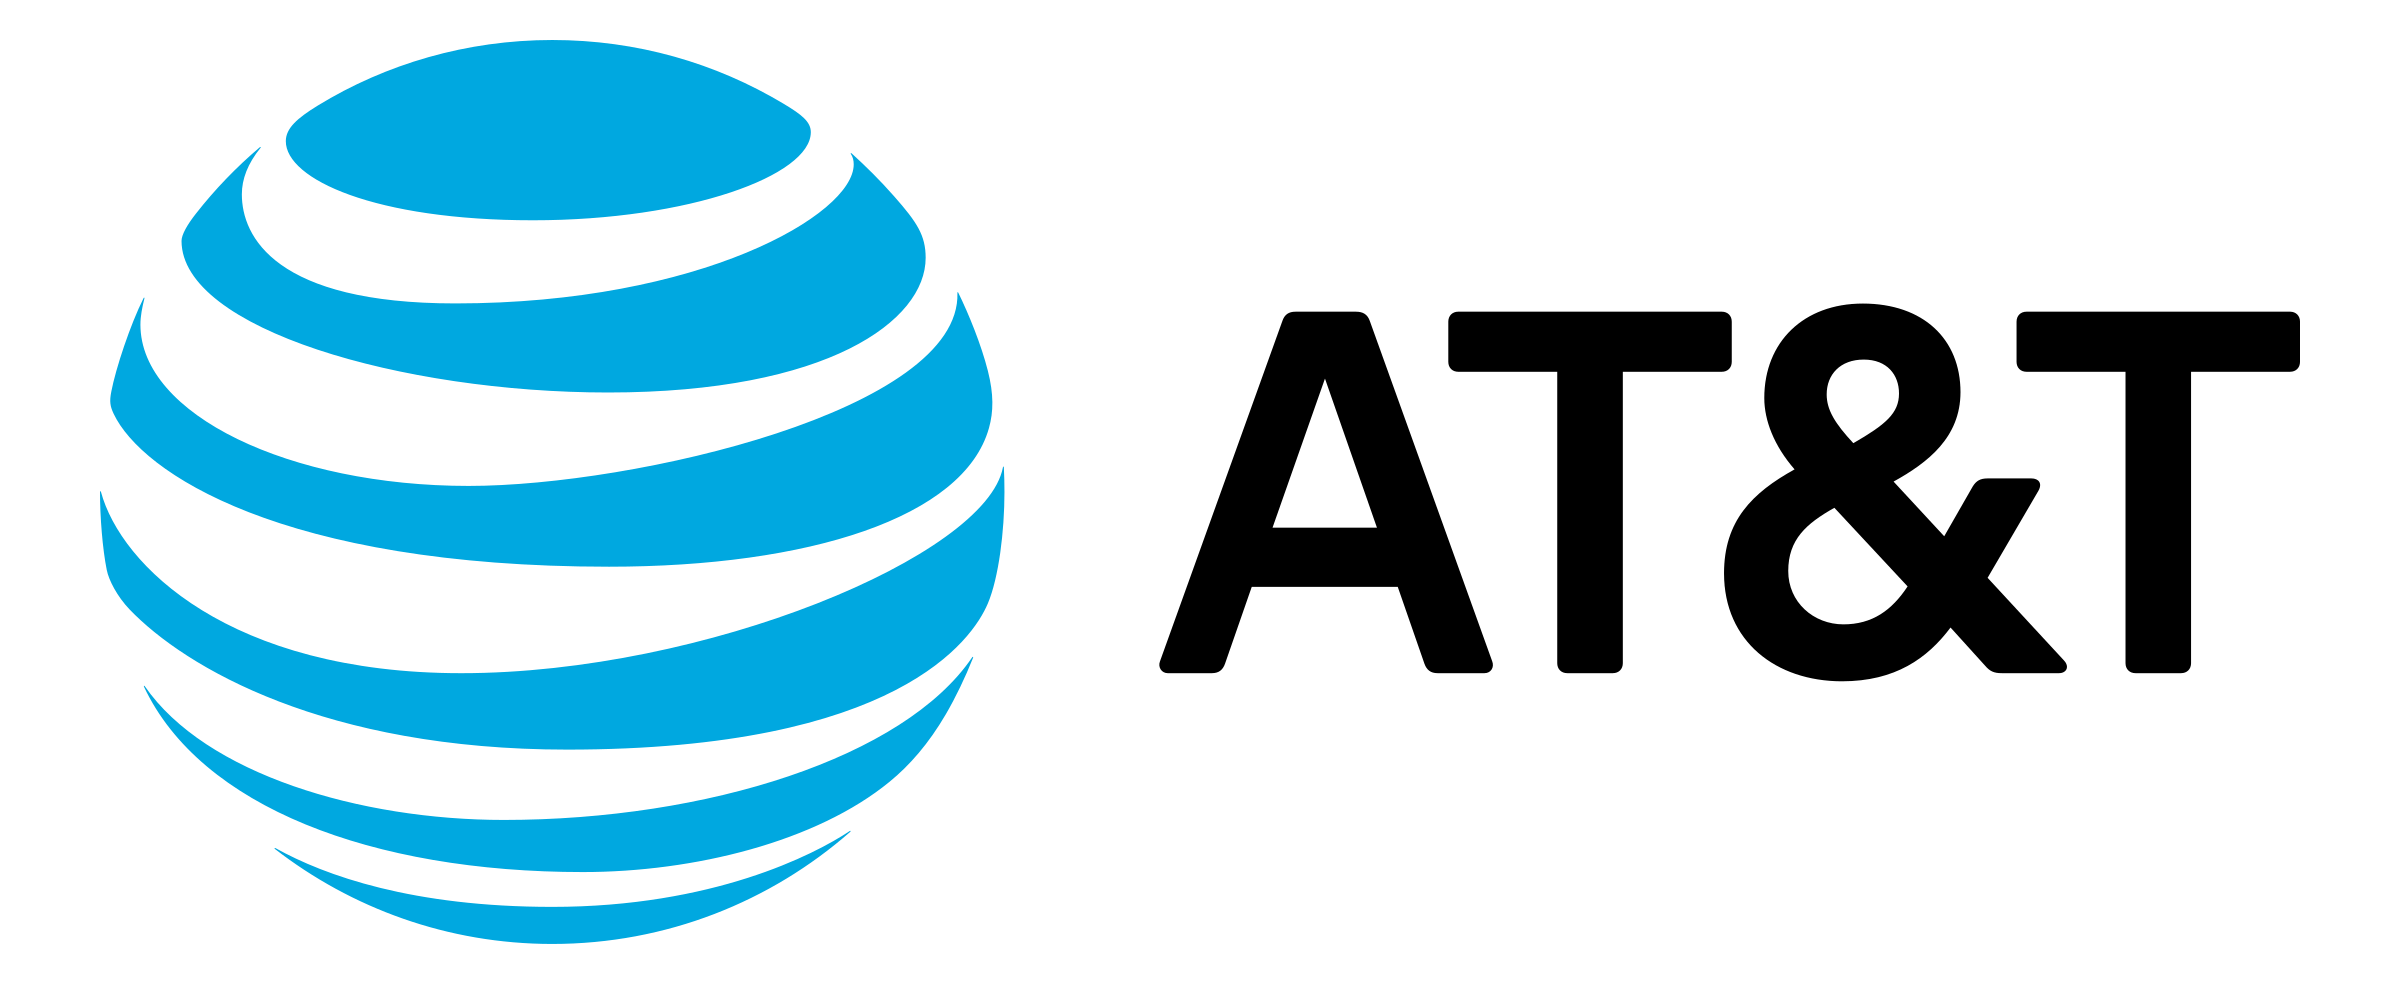 ioAudio is used at AT&T